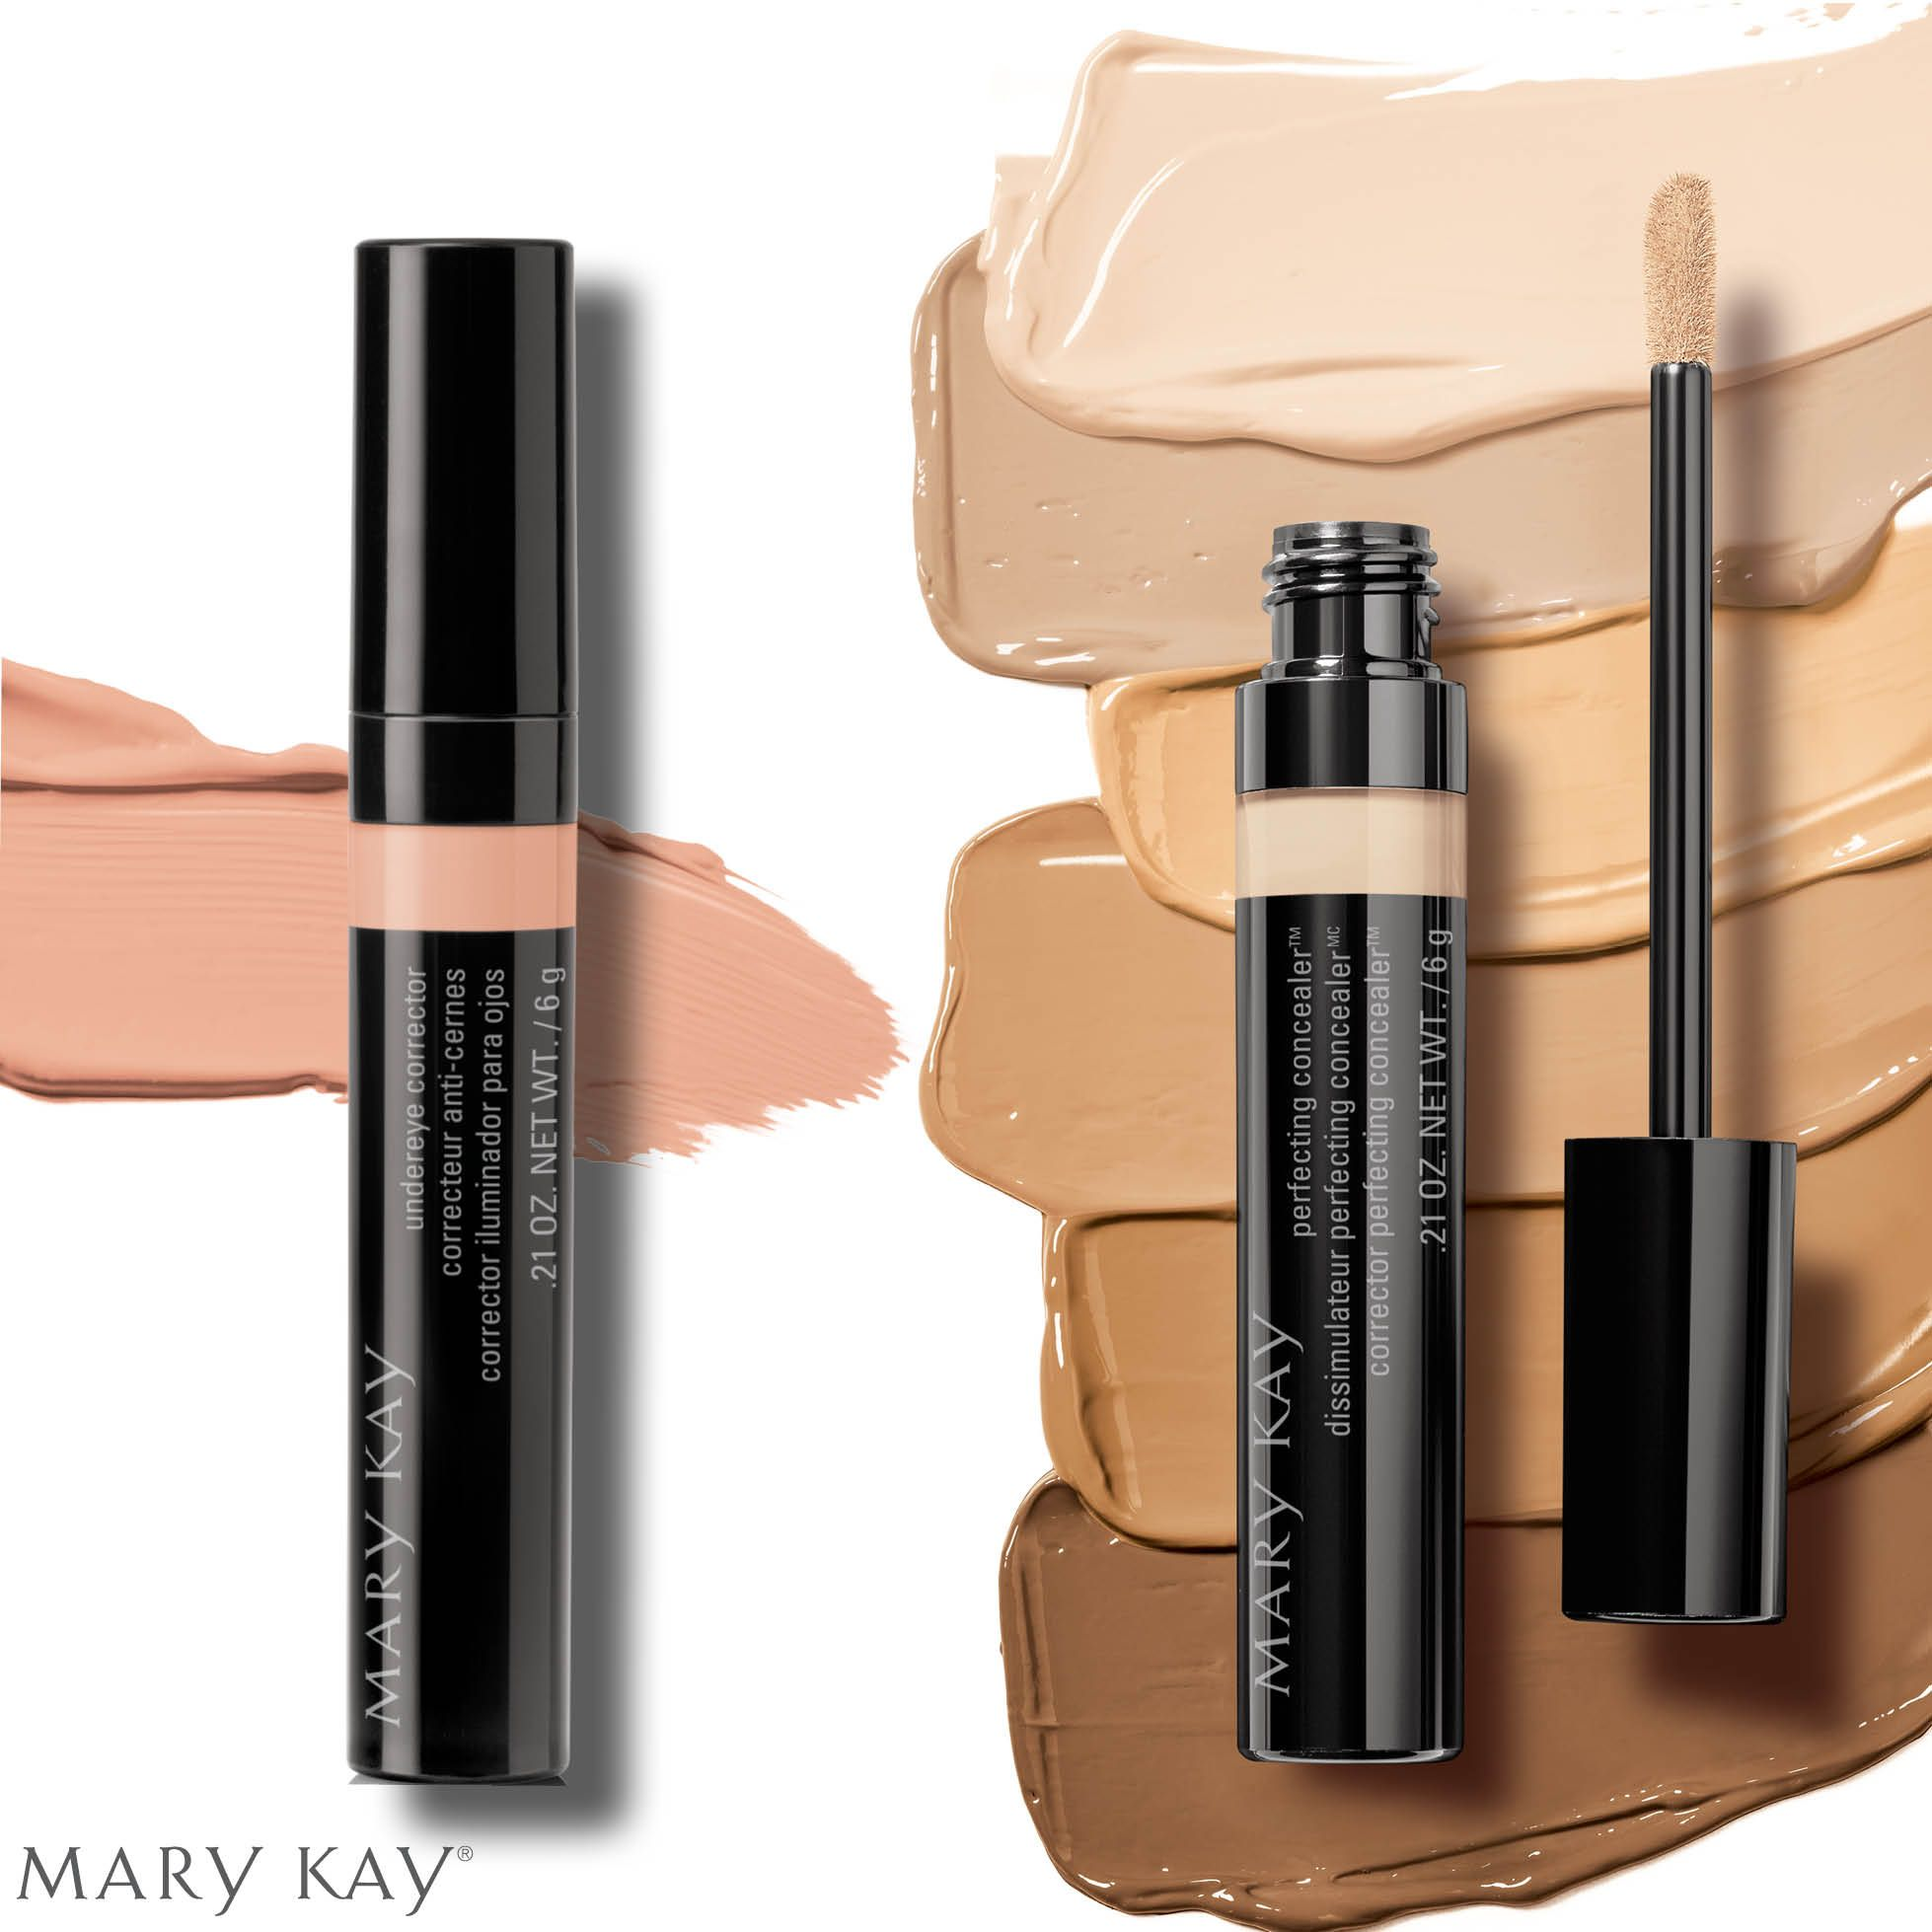 Introducing the new Undereye Corrector and Perfecting Concealer ♡